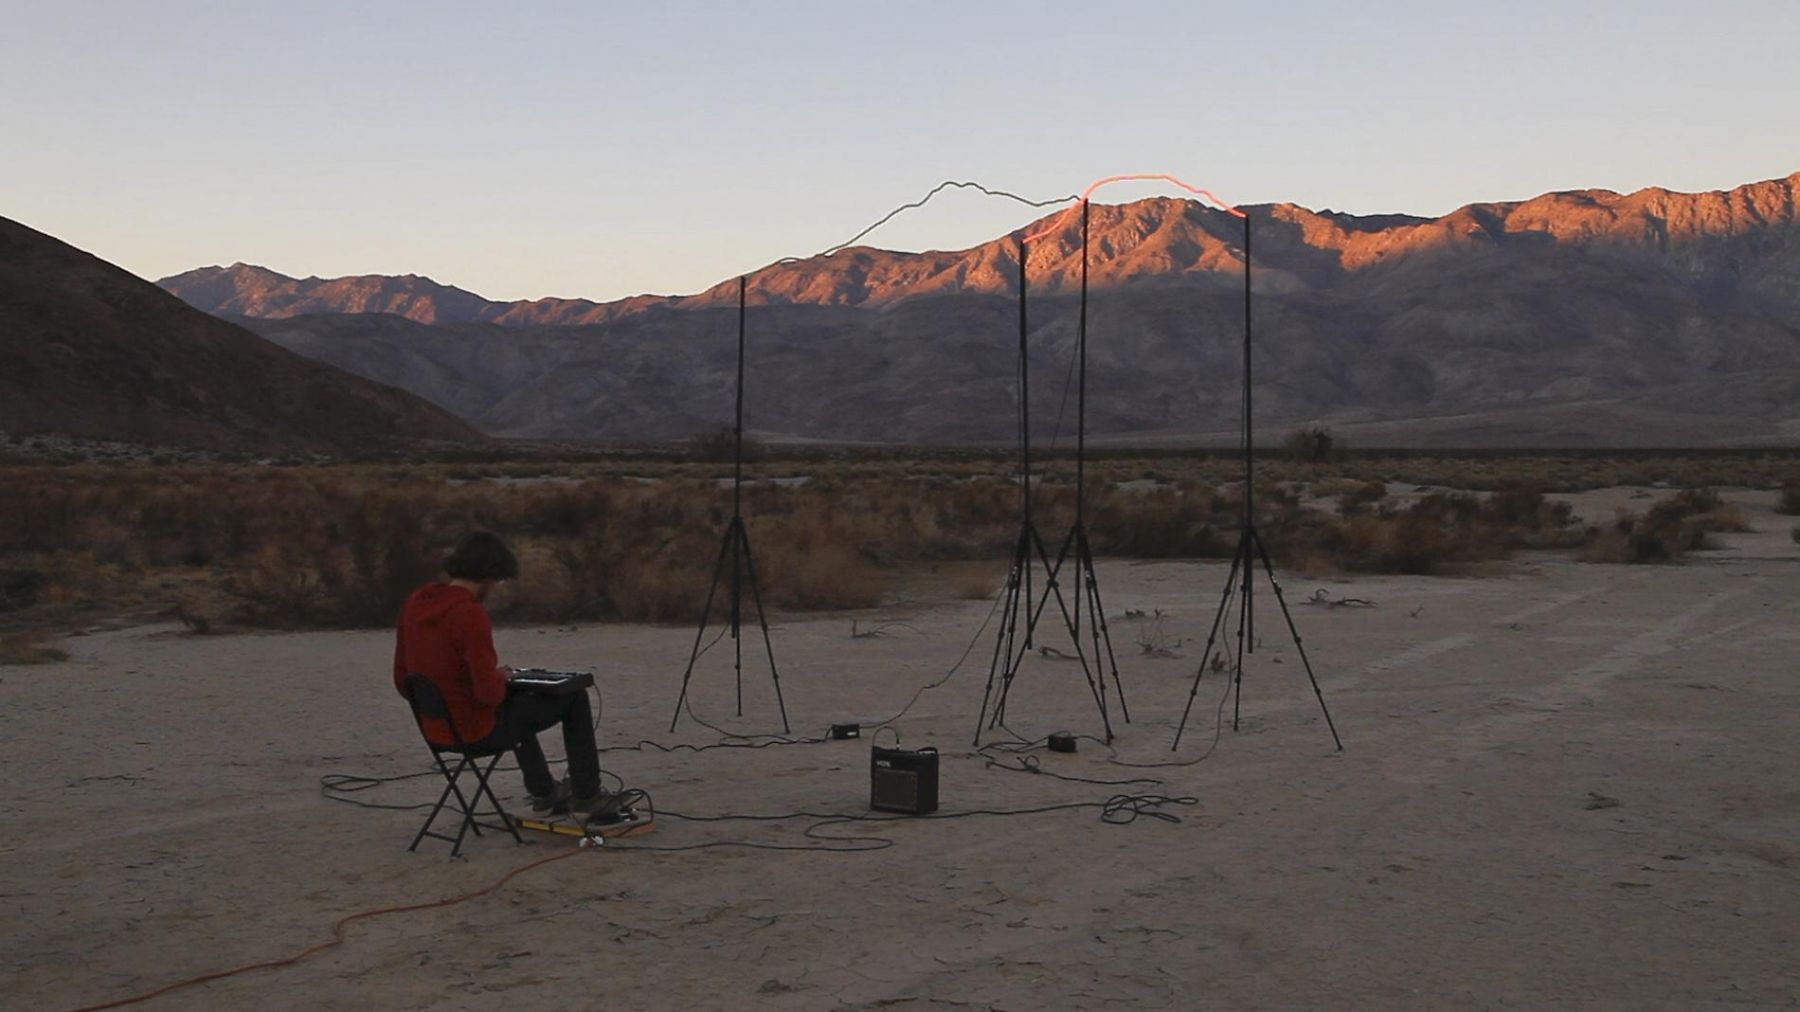 , RICHARD T. WALKER outside of all things (still), 2013 2 channel HD installation Duration: 7:51 minutes